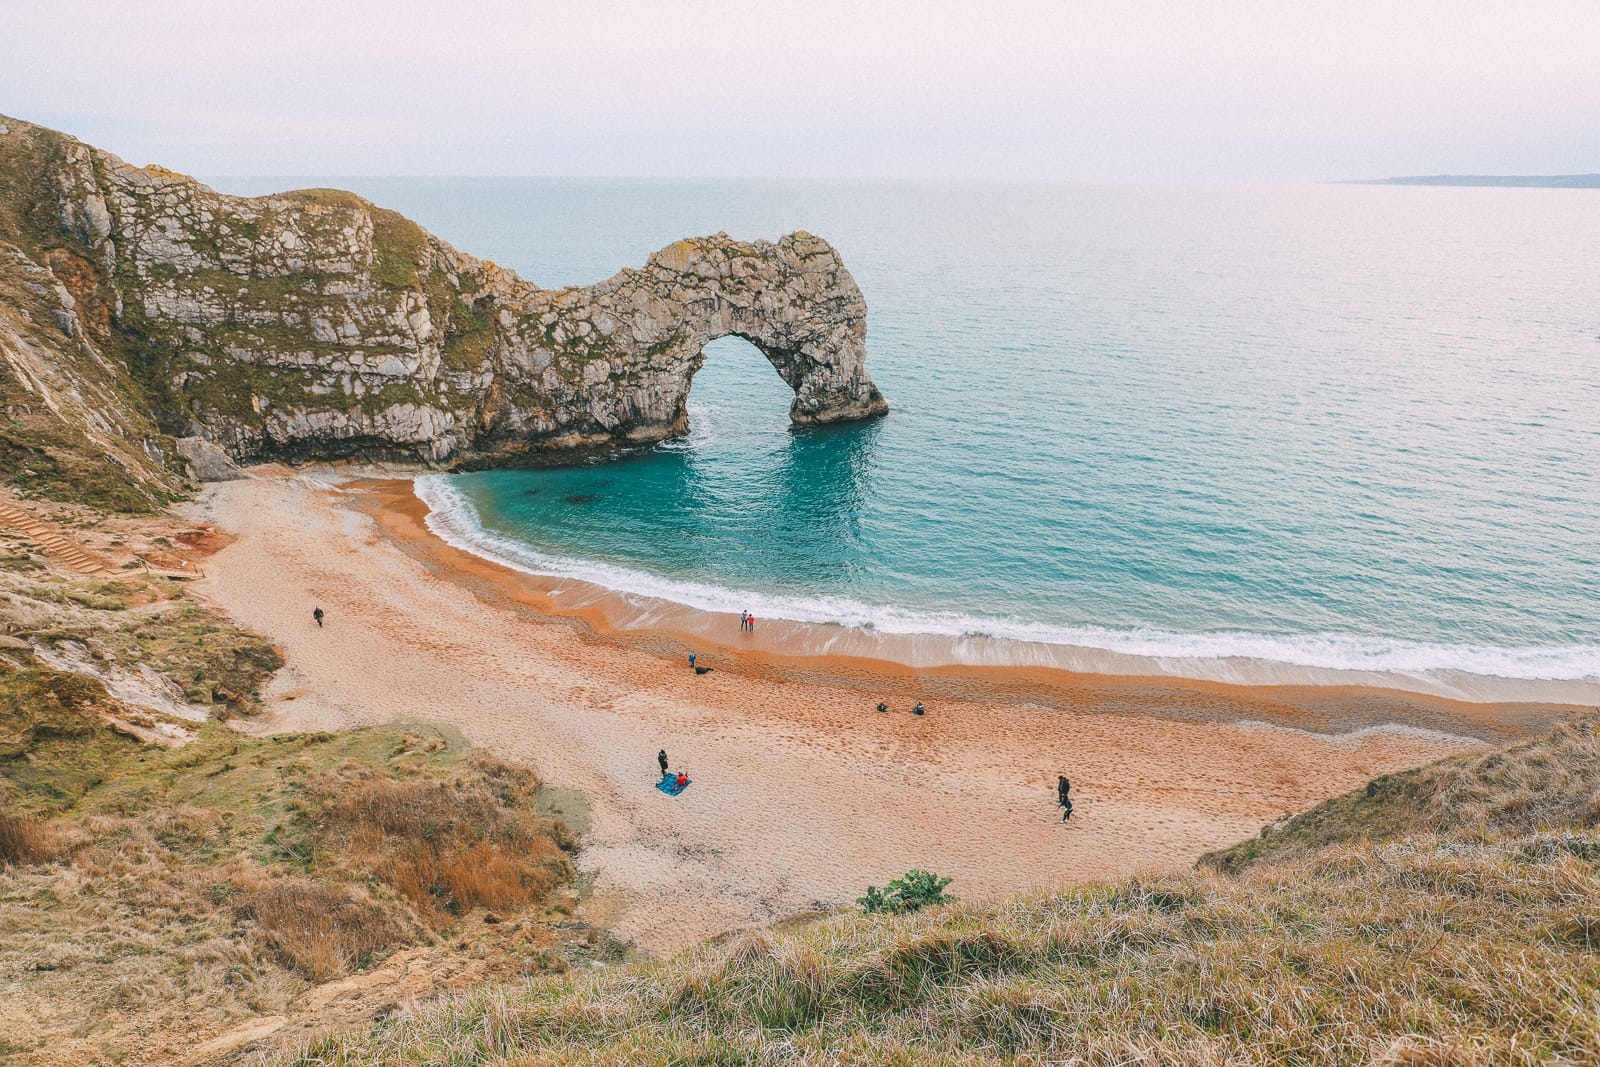 The Amazing 8,000 Year Old English Village And Durdle Door In The Jurassic Coast Of England (30)